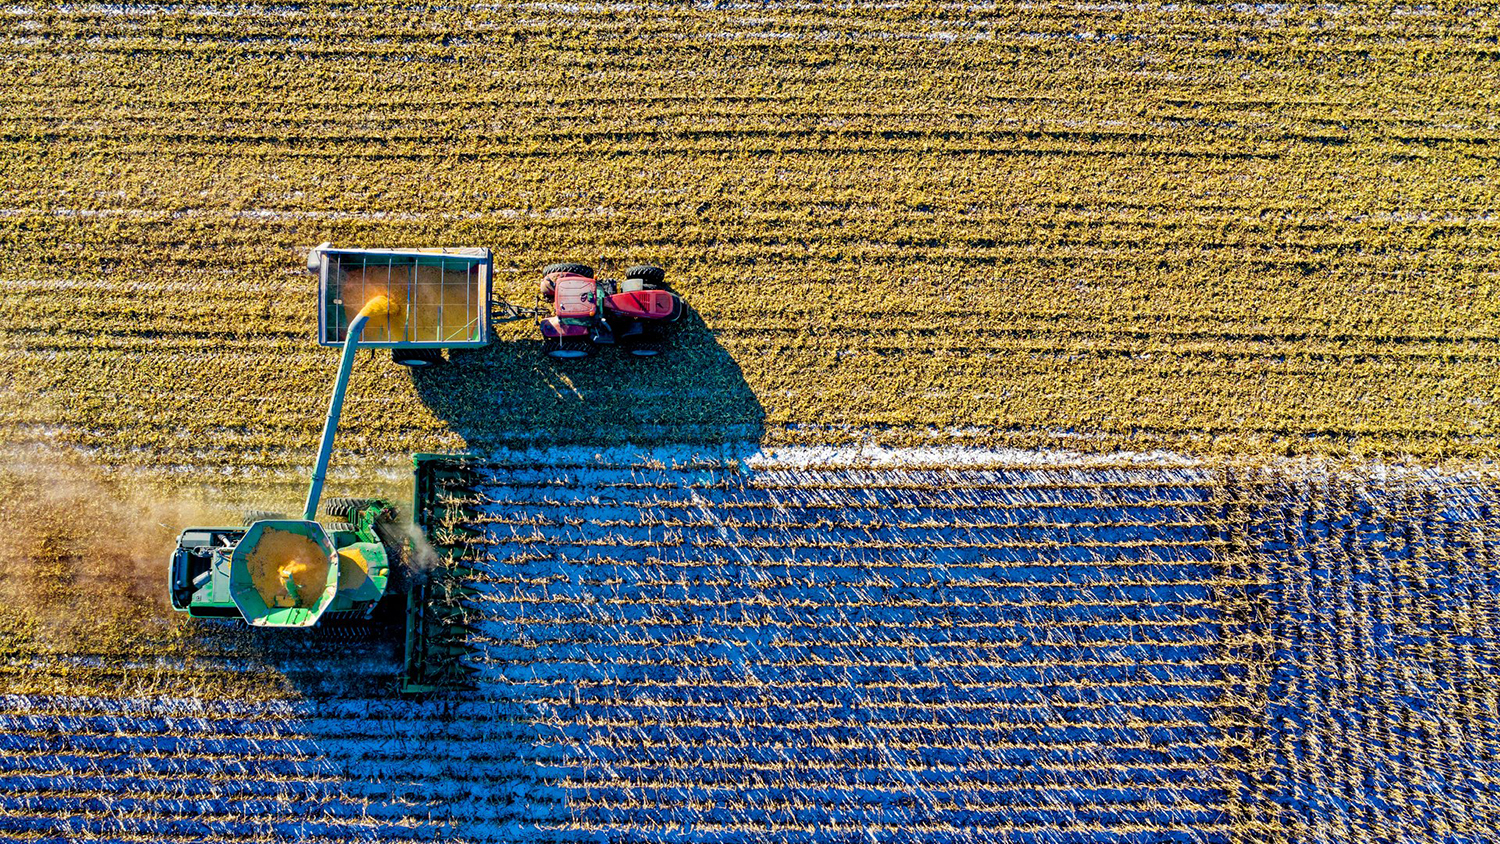 aerial view of a combine harvester in a field